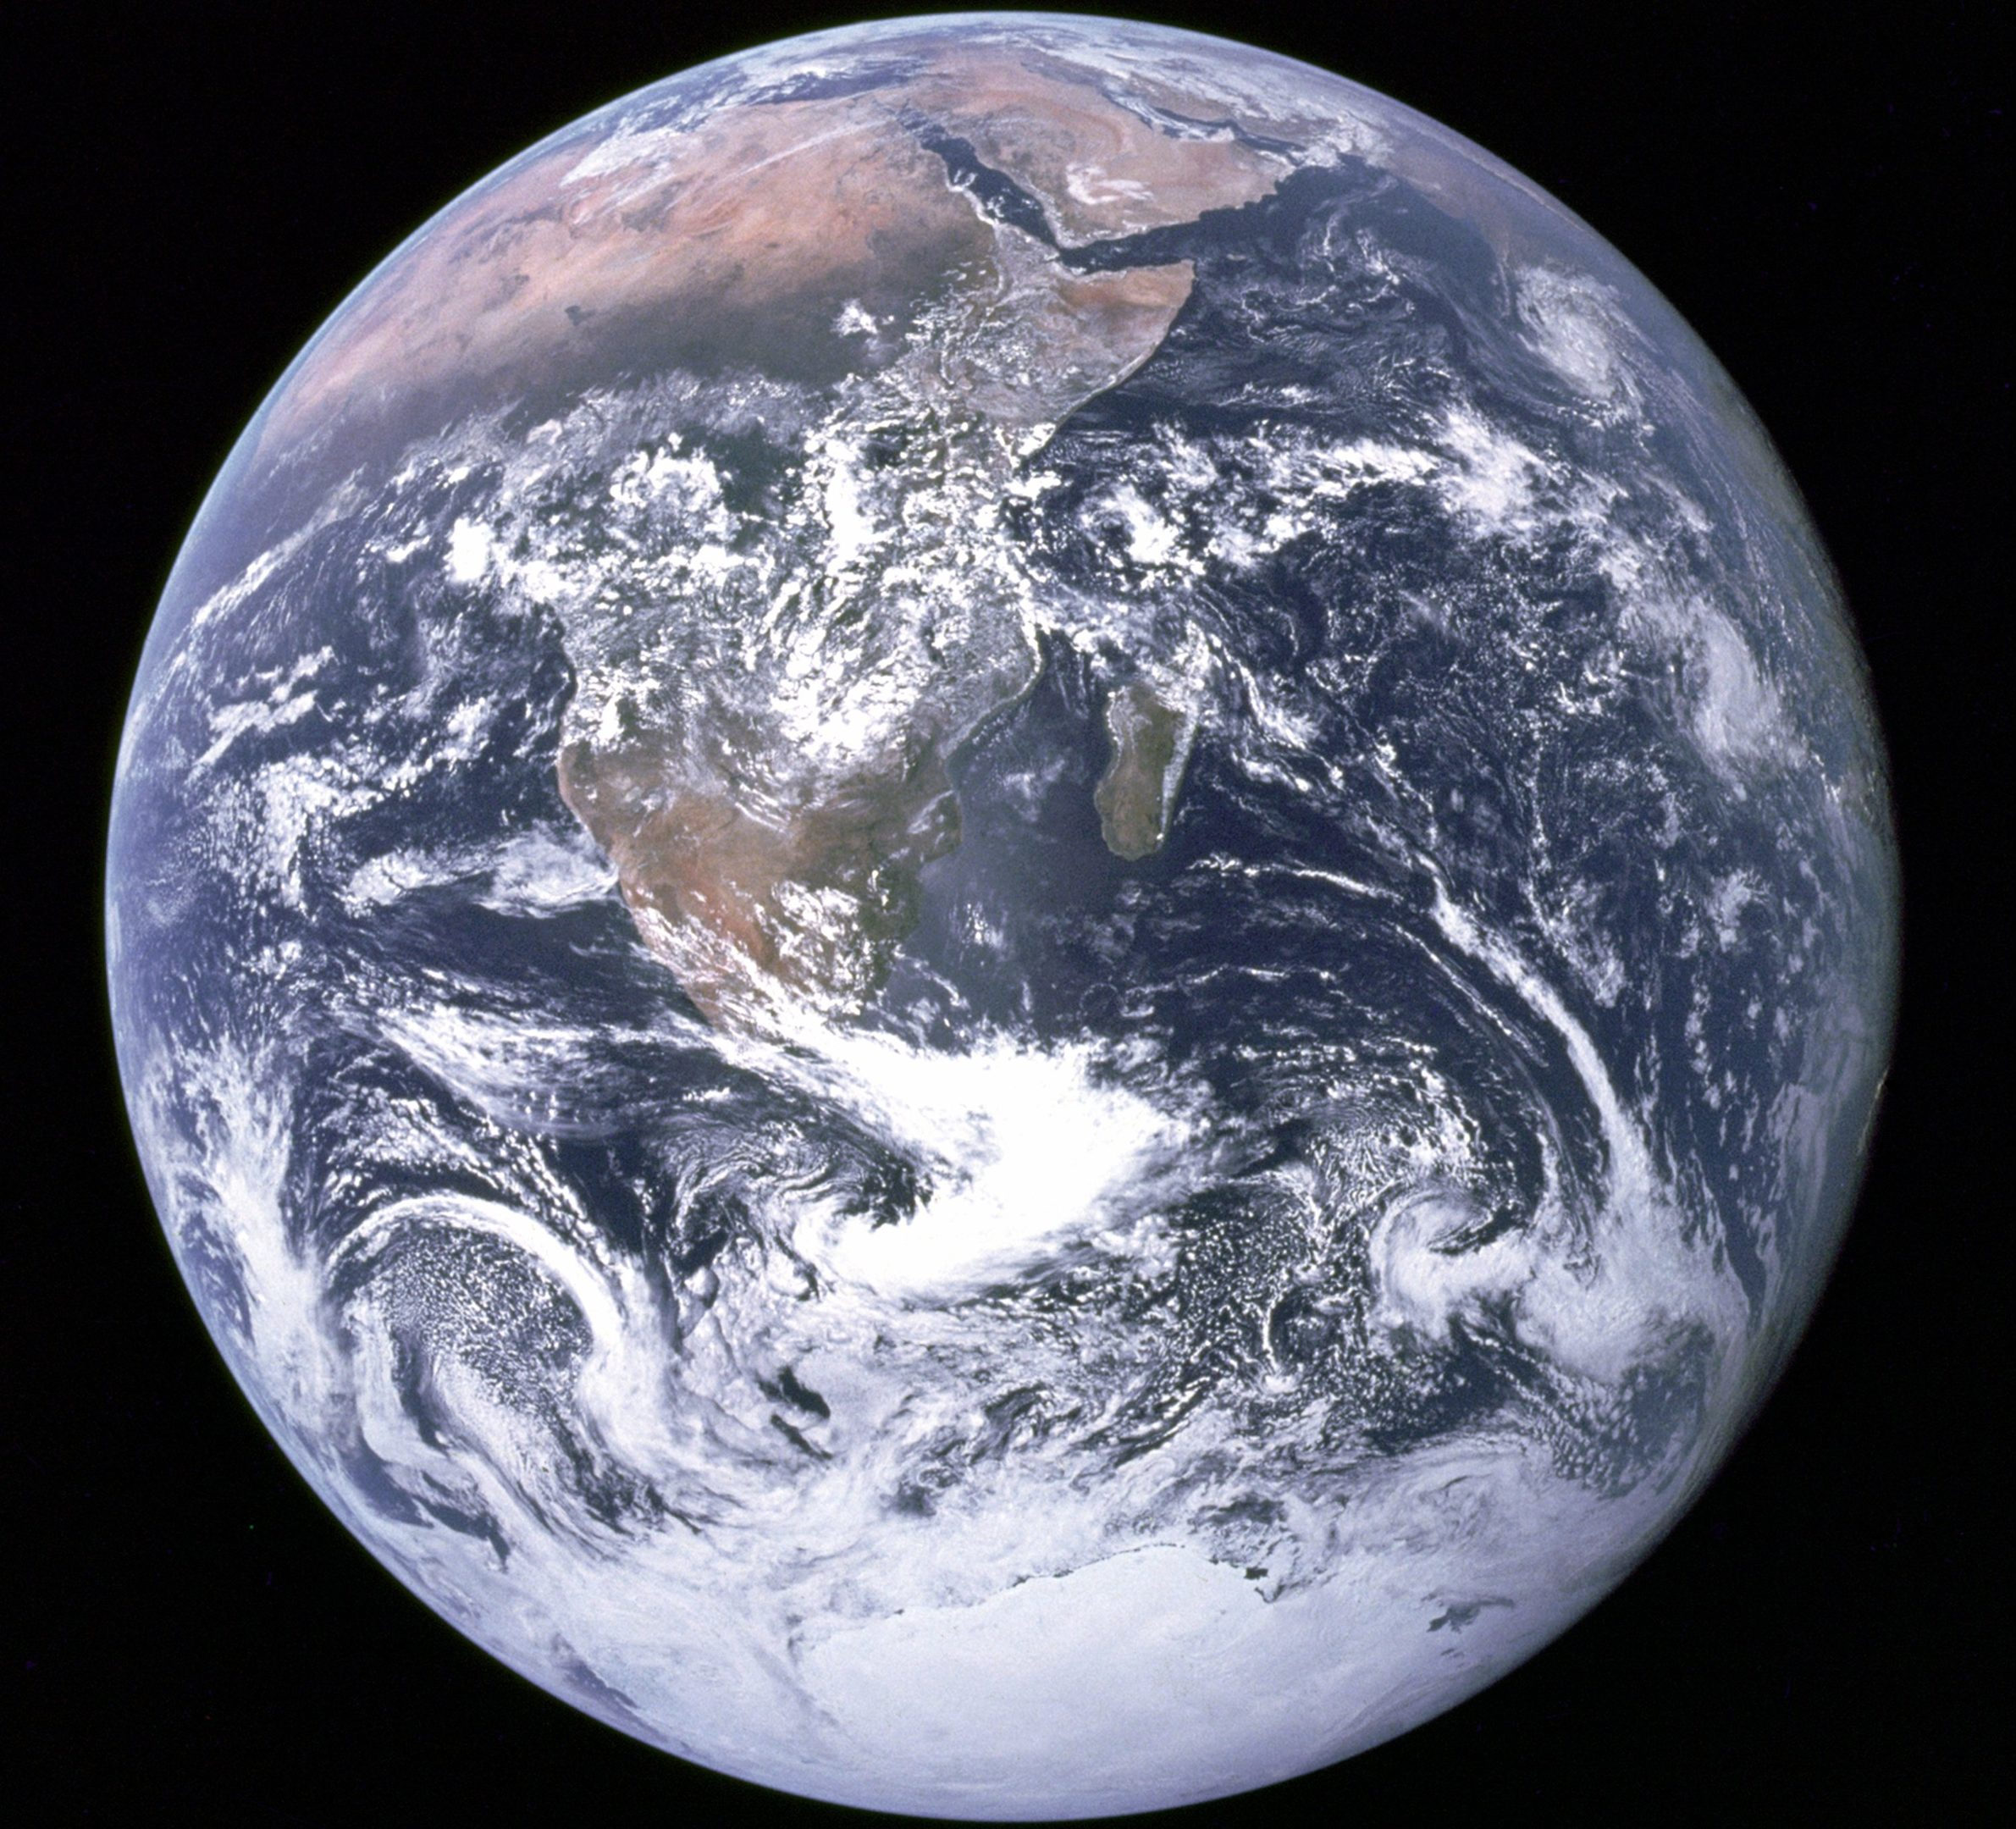 'The Blue Marble' image of Earth taken by Apollo 17 crew on December 7, 1972